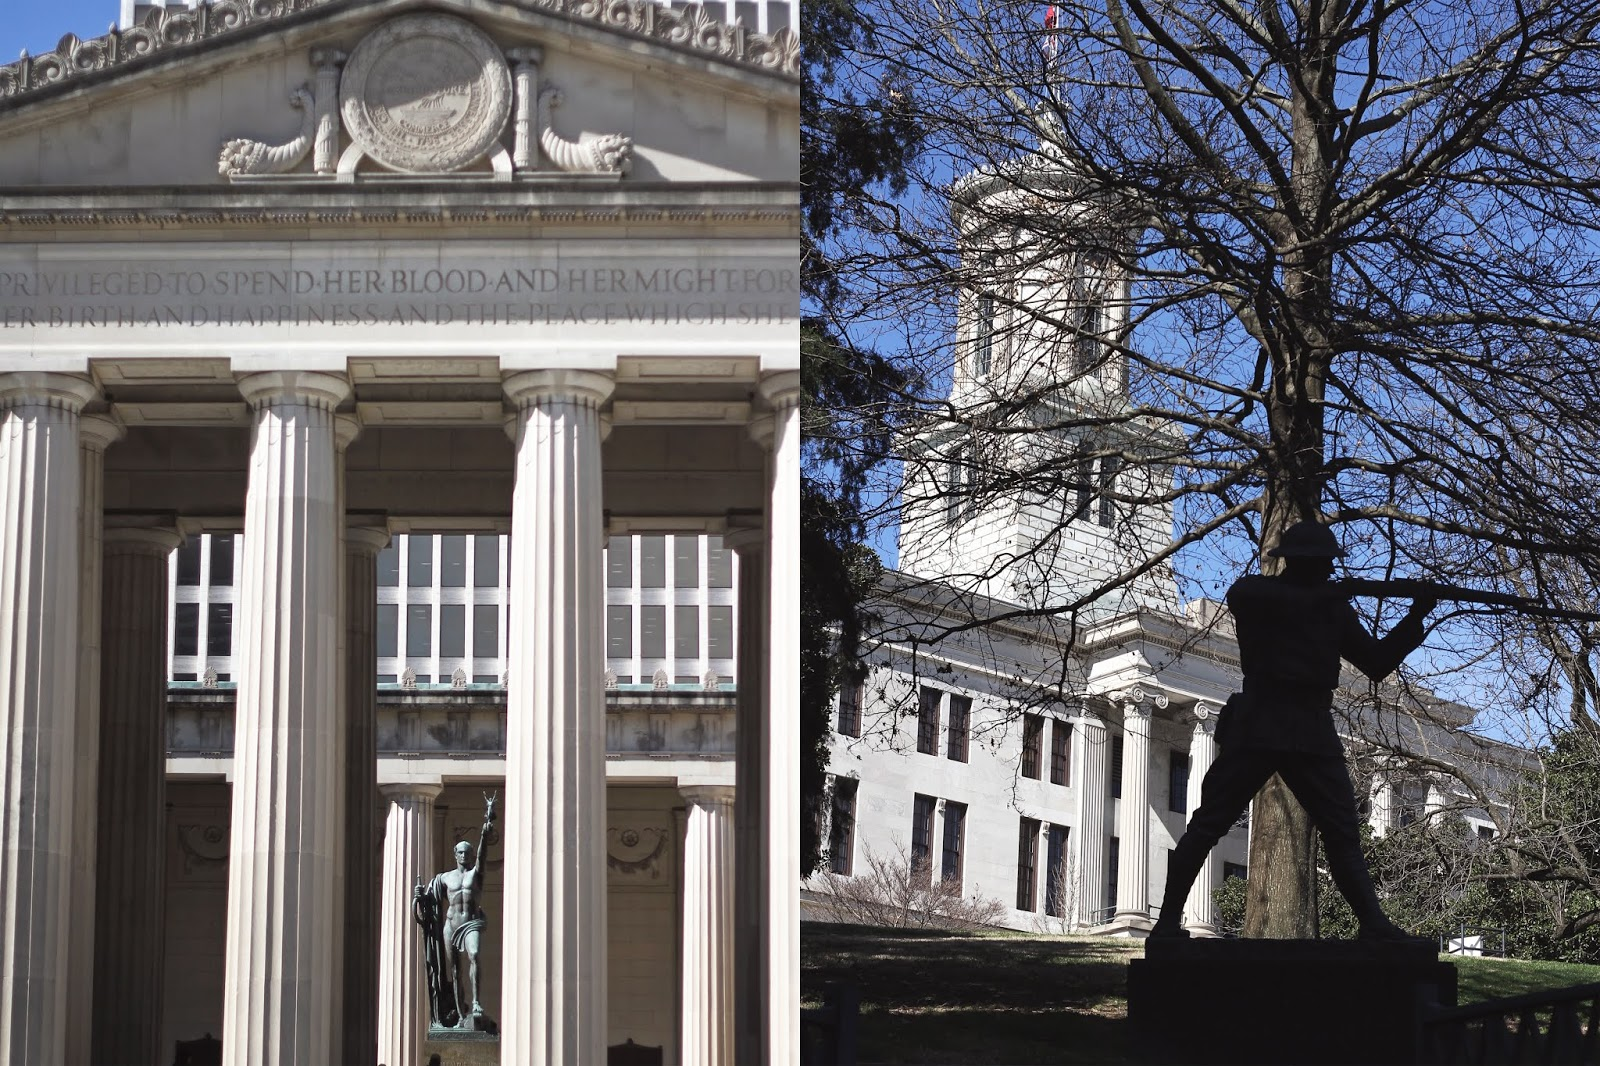 Architecture in Nashville, Andrew Jackson Nashville, Nashville State Capitol, Nashville Travel Guide